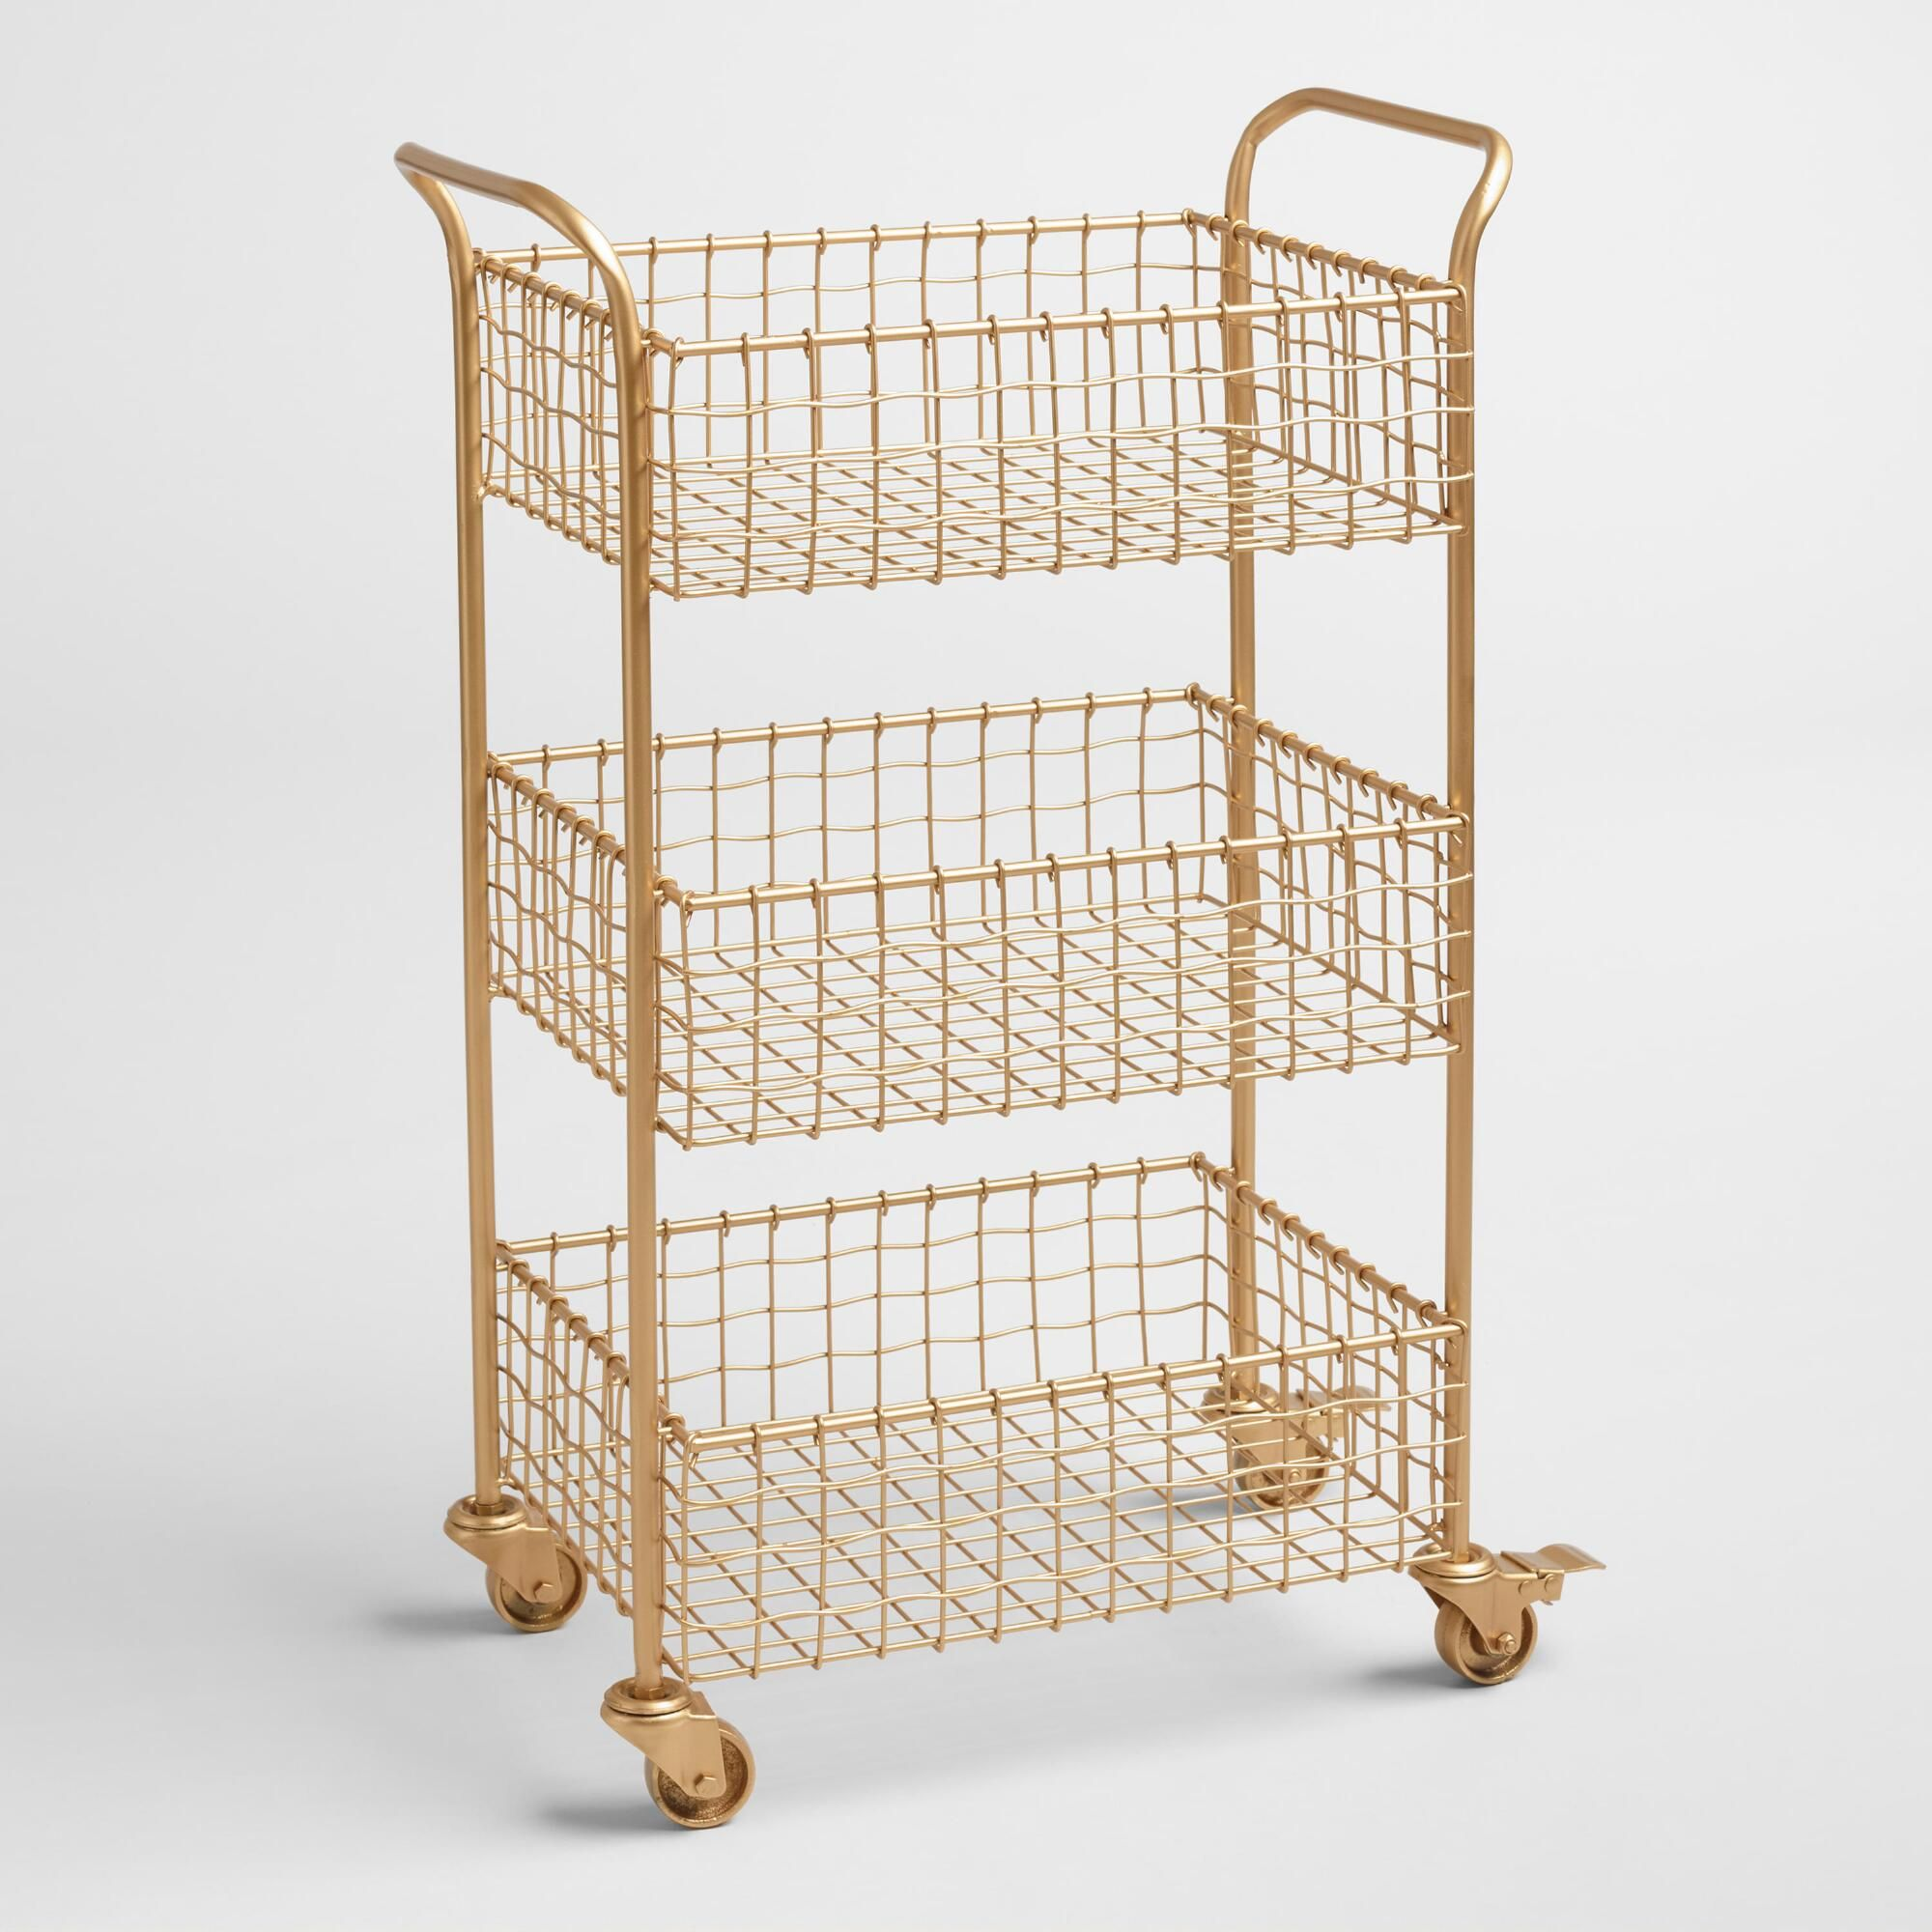 -With a brushed-gold finish and a slightly wavy weave, our metal rolling cart lends effortless glamour to any workspace. Three deep basket-style tiers and locking casters give this sophisticated piece substance to match its style.  Color:Gold. Also could be used for furniture,organization,shelf,bathroom shelf,bathroom organization,home storage,home office storage,cabinet,organizer,storage and organization,home decor,decor,cart,metal cabinet,kitchen cart,utility cart. By Cost Plus World Market.54